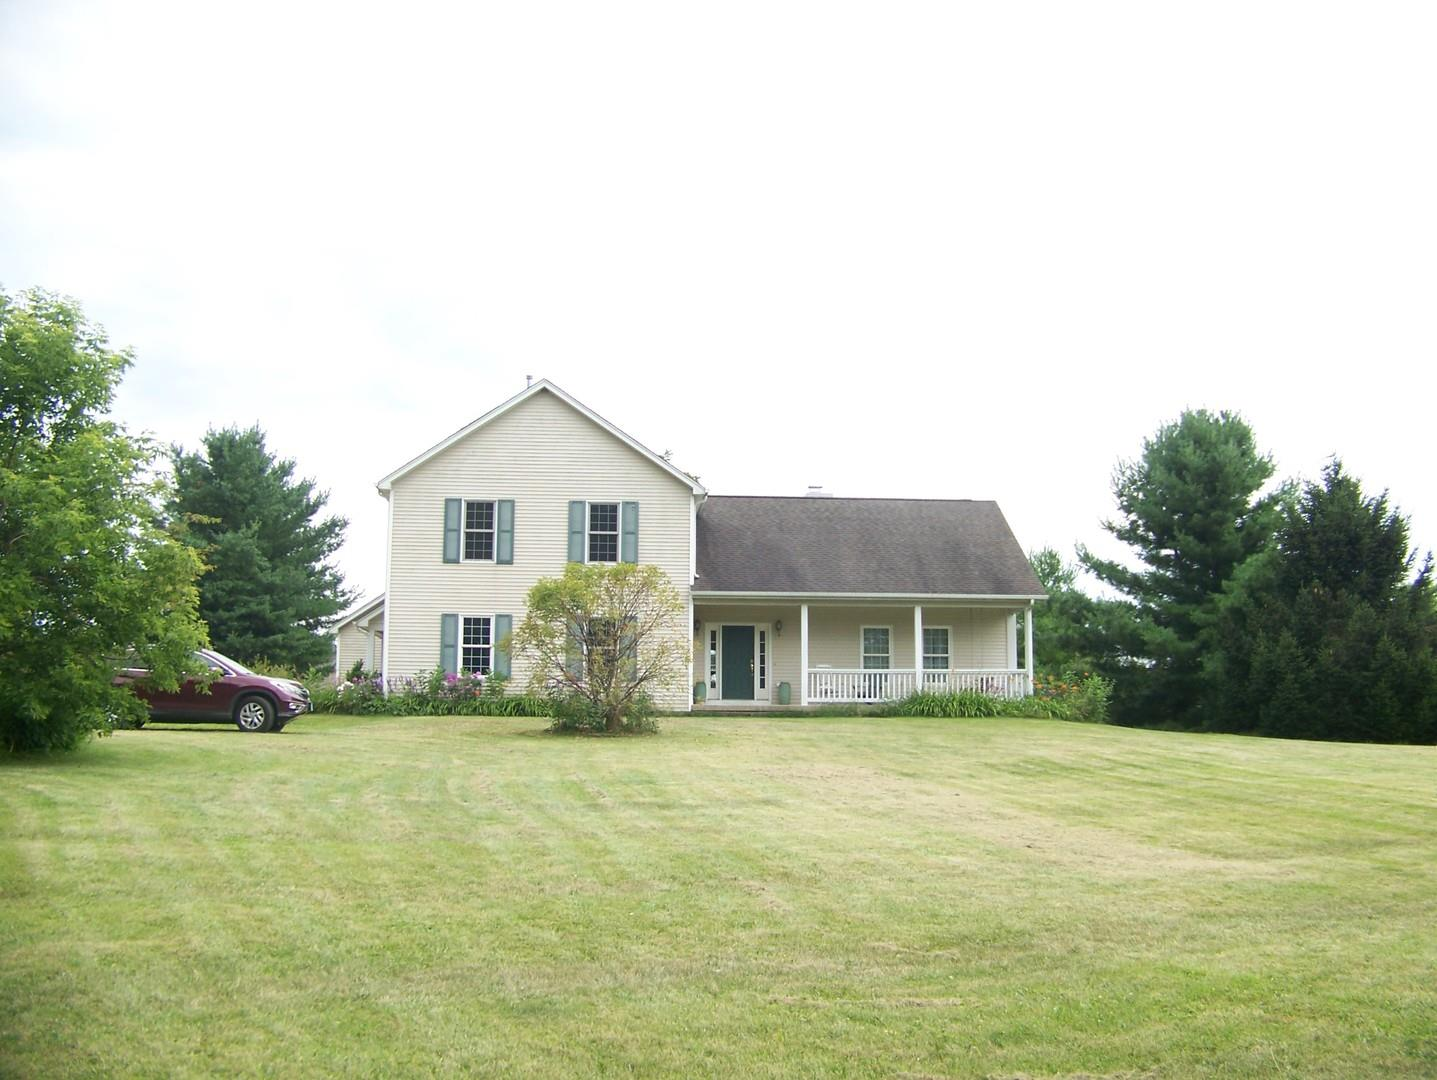 14911 Perkins Road, Woodstock, IL 60098 - #: 10854239